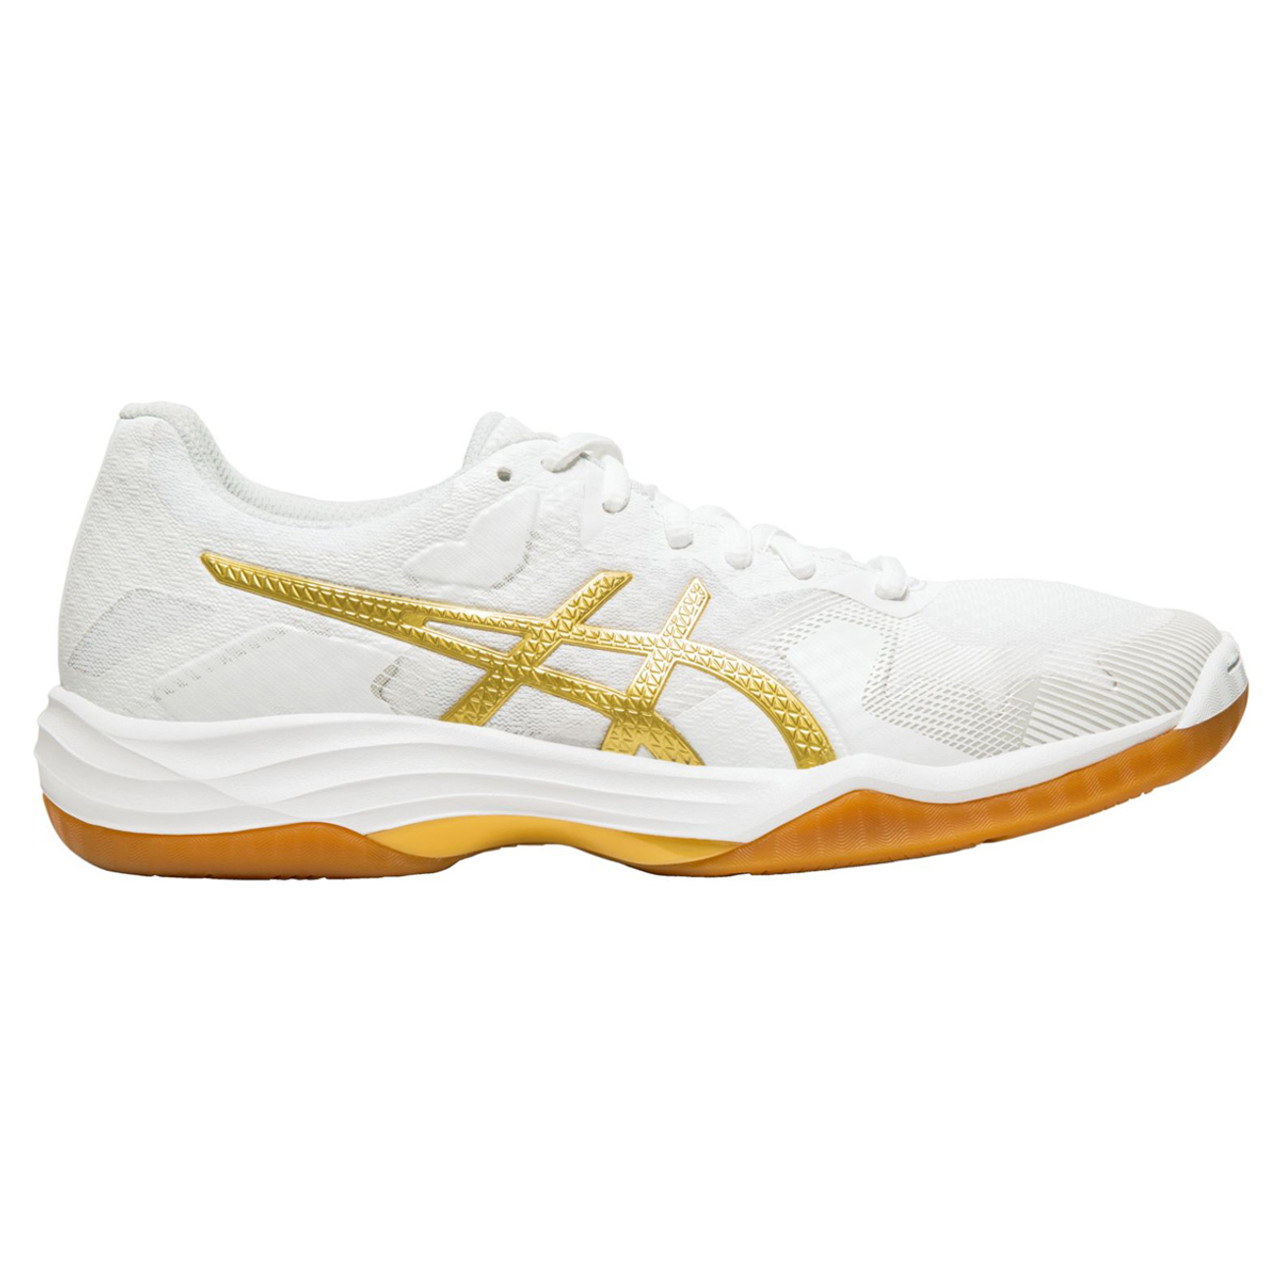 Asics Gel Tactic Women's Volleyball Shoes White, Gold